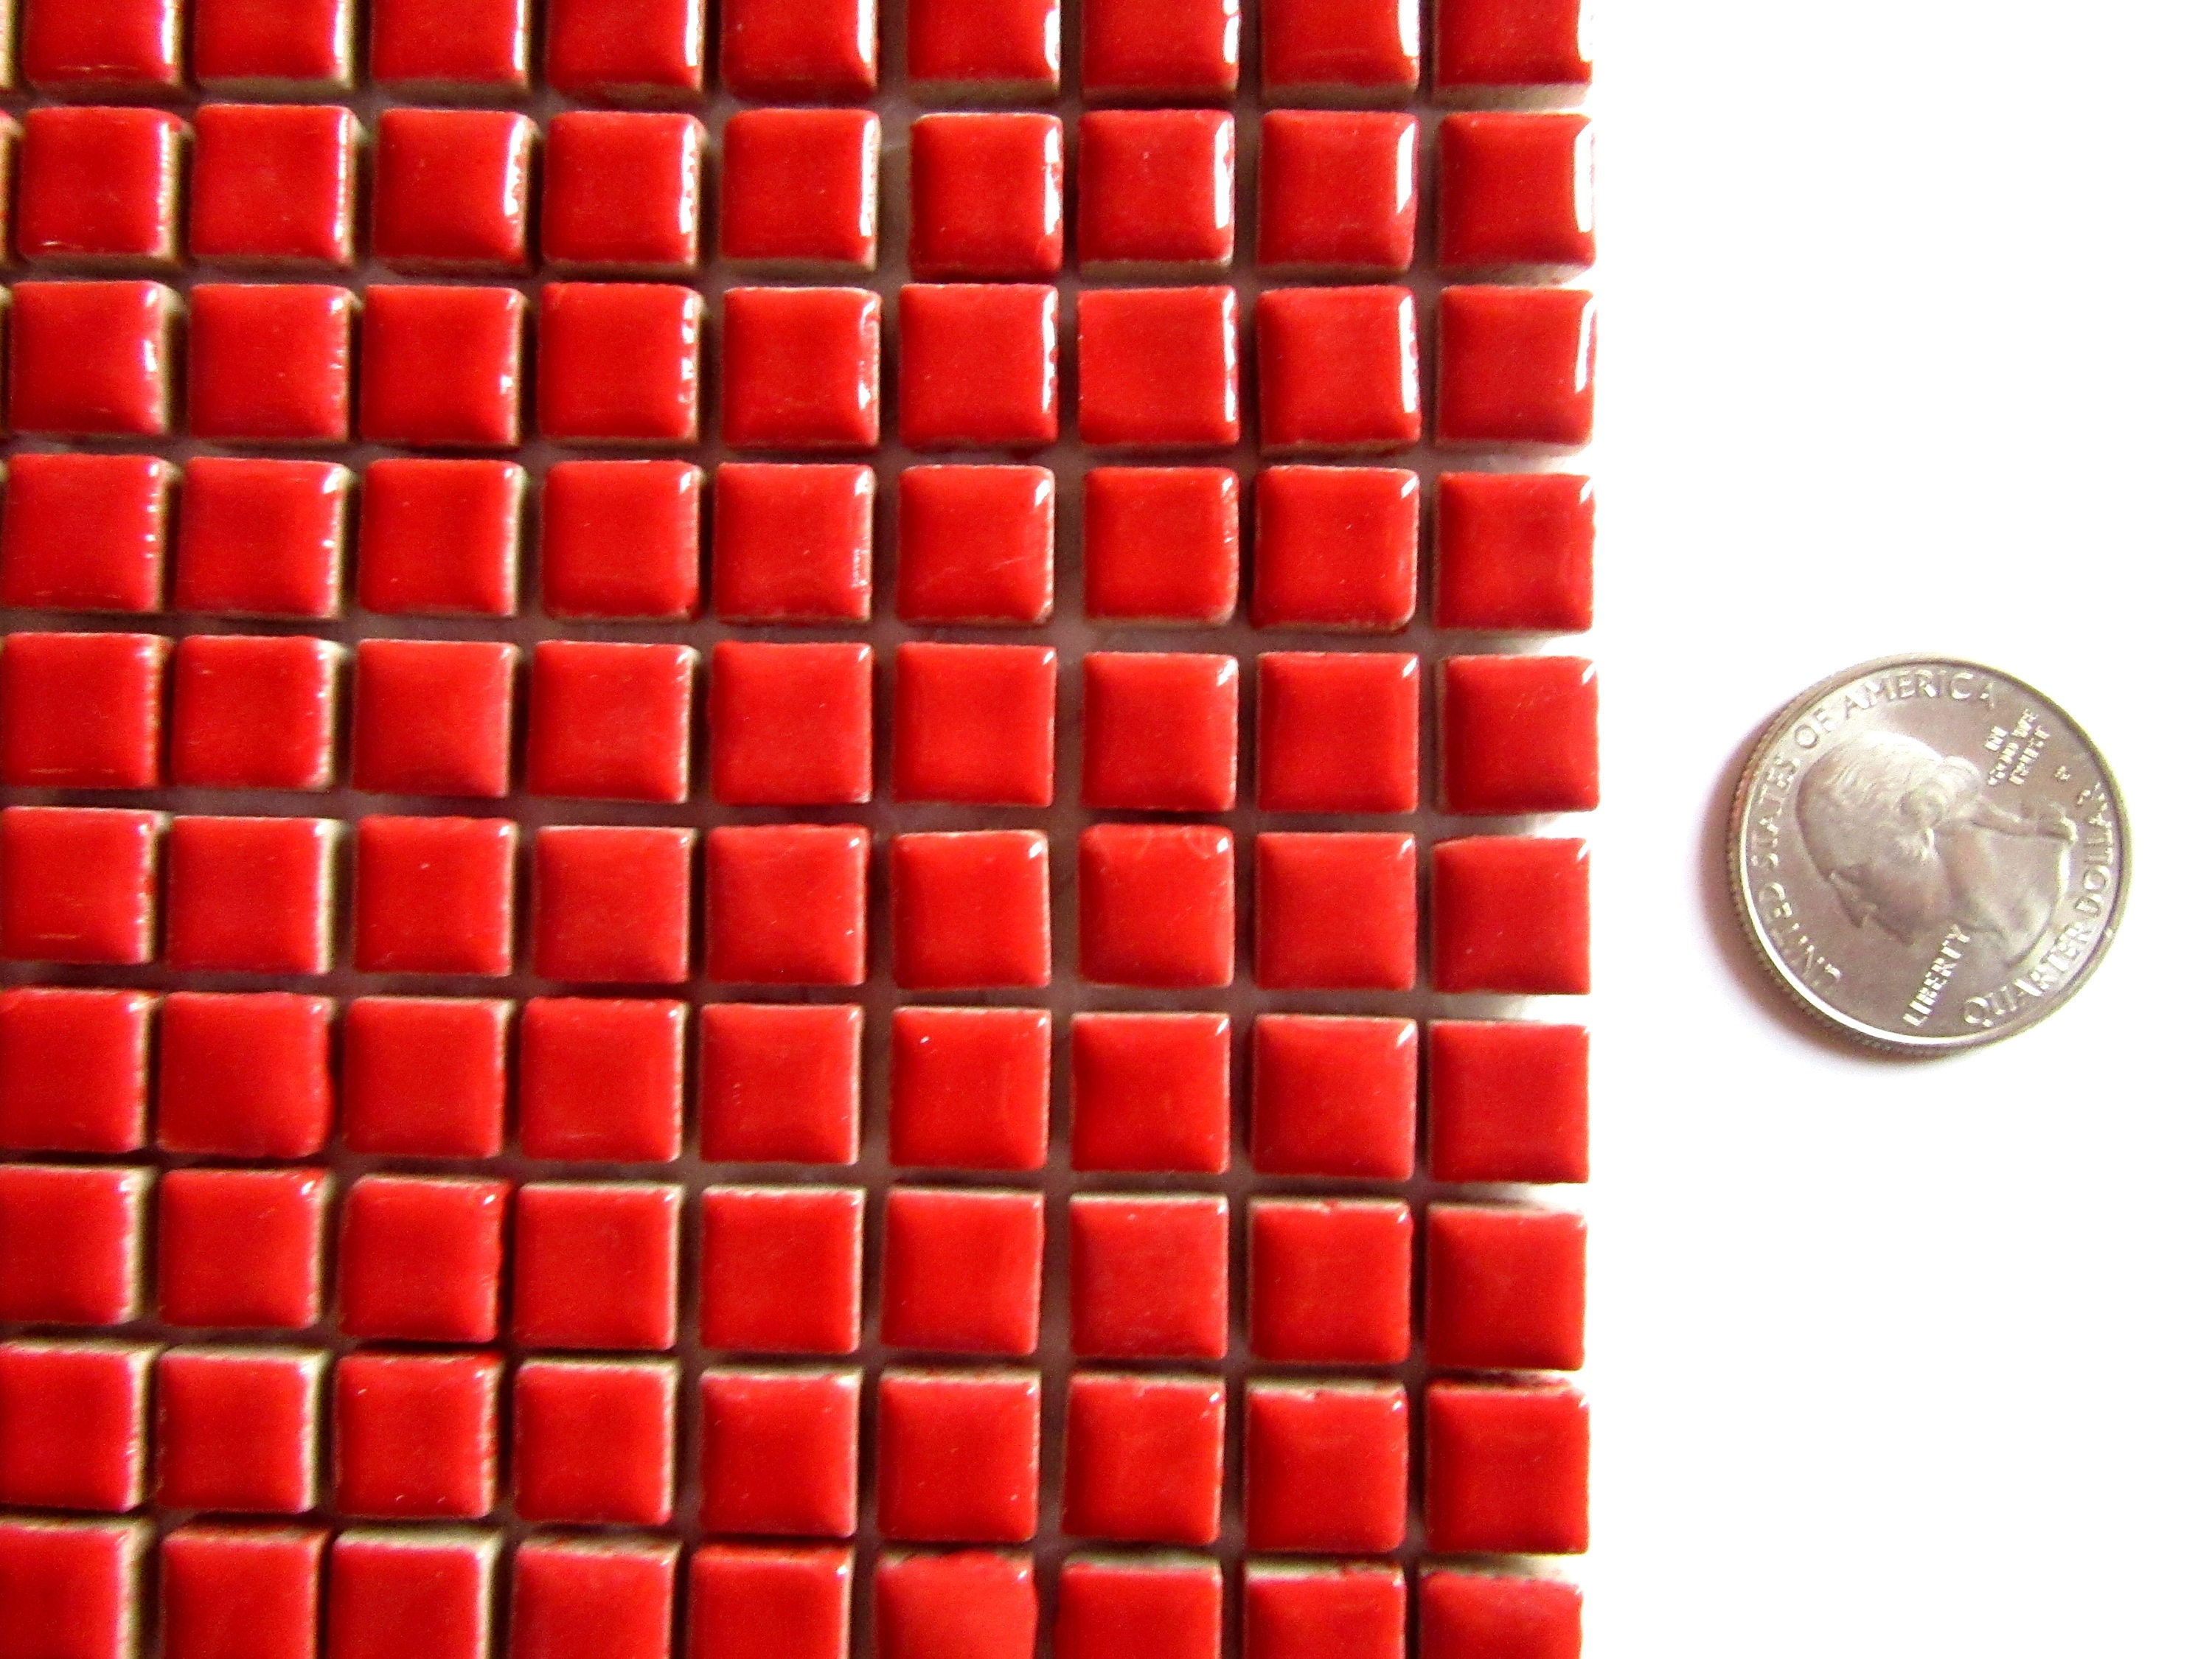 100 small red tiles mini red mosaic tiles tiny red tiles small 100 small red tiles mini red mosaic tiles tiny red tiles small ceramic tiles small square tiles bright red tiles ceramic mosaic pieces dailygadgetfo Images